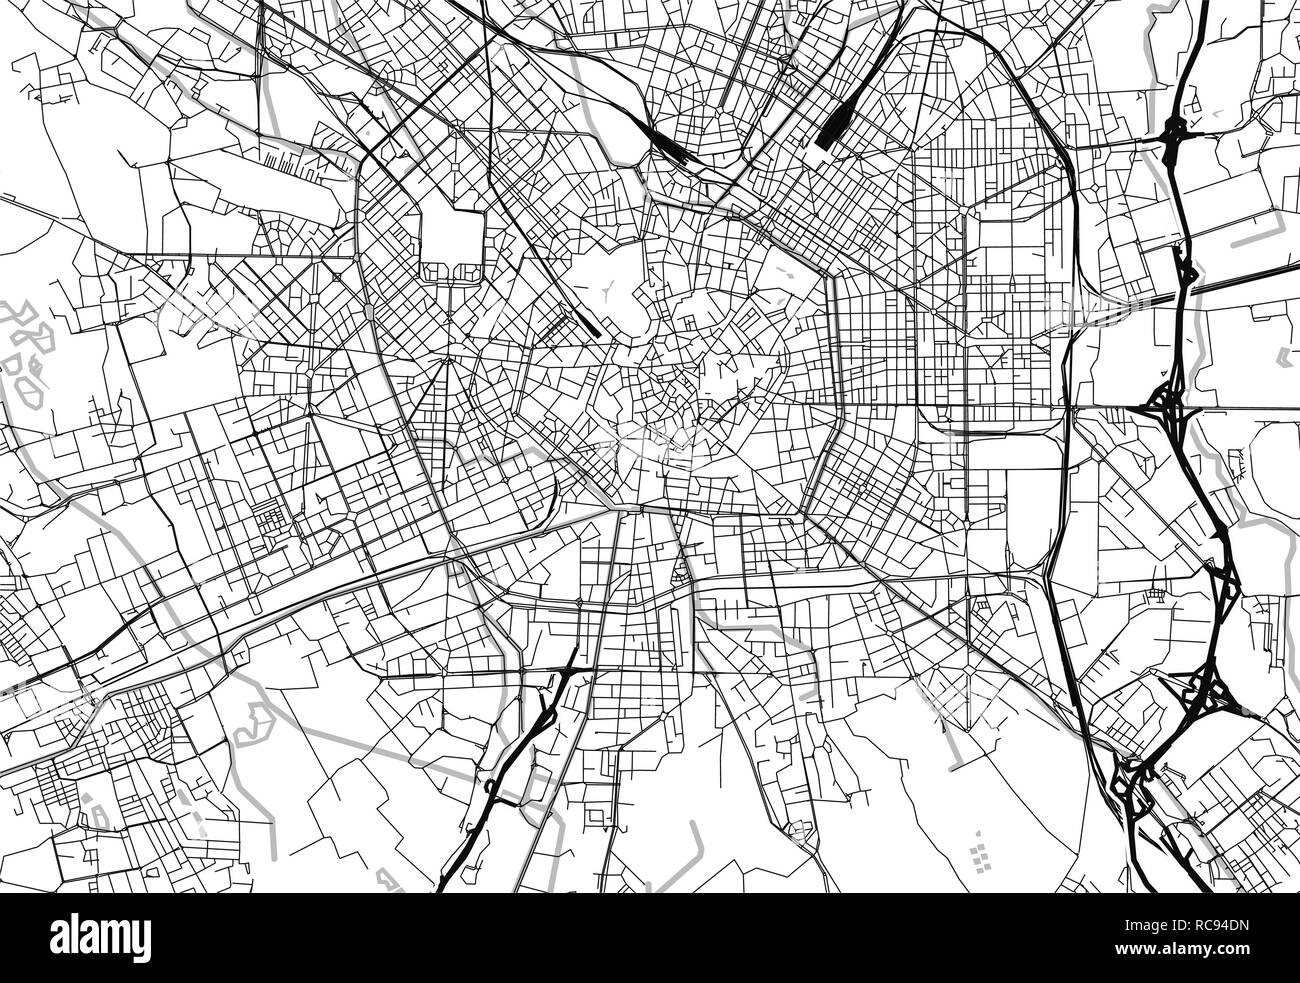 Area map of Milan, Italy. This artmap of Milan contains geography lines for land mass, water, major and minor roads. - Stock Vector